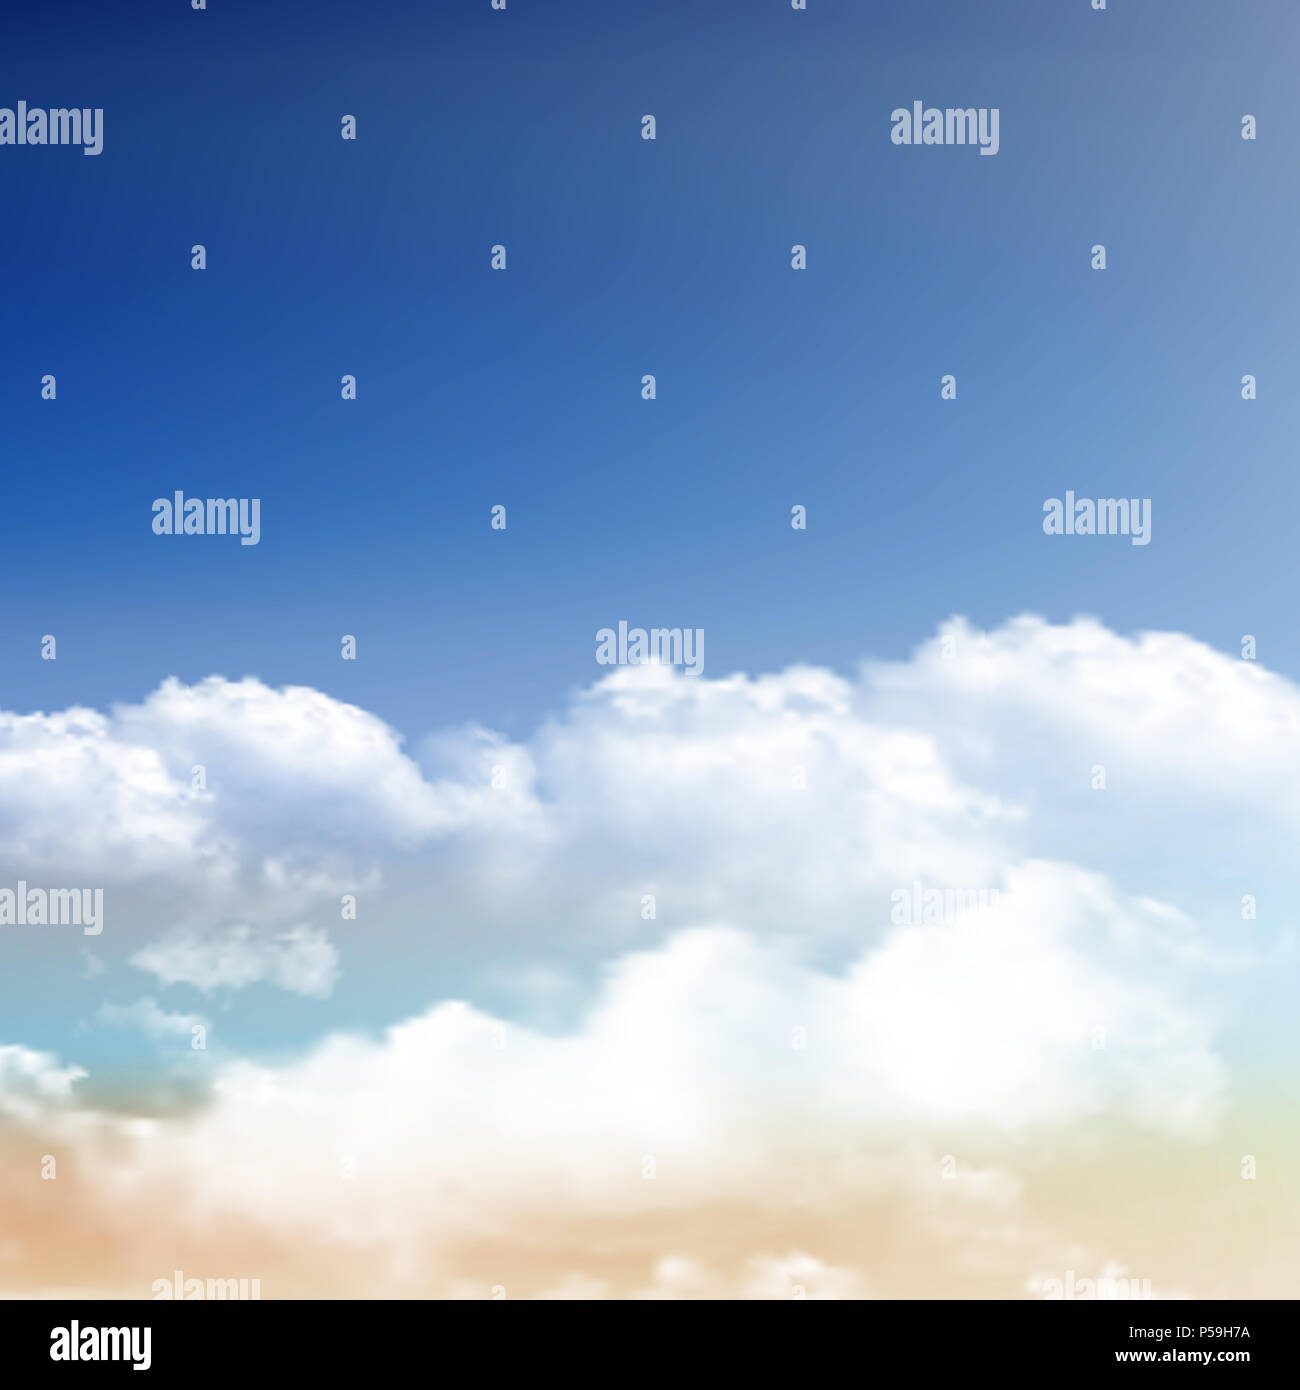 Realistic fluffy clouds on a blue sky background - Stock Image